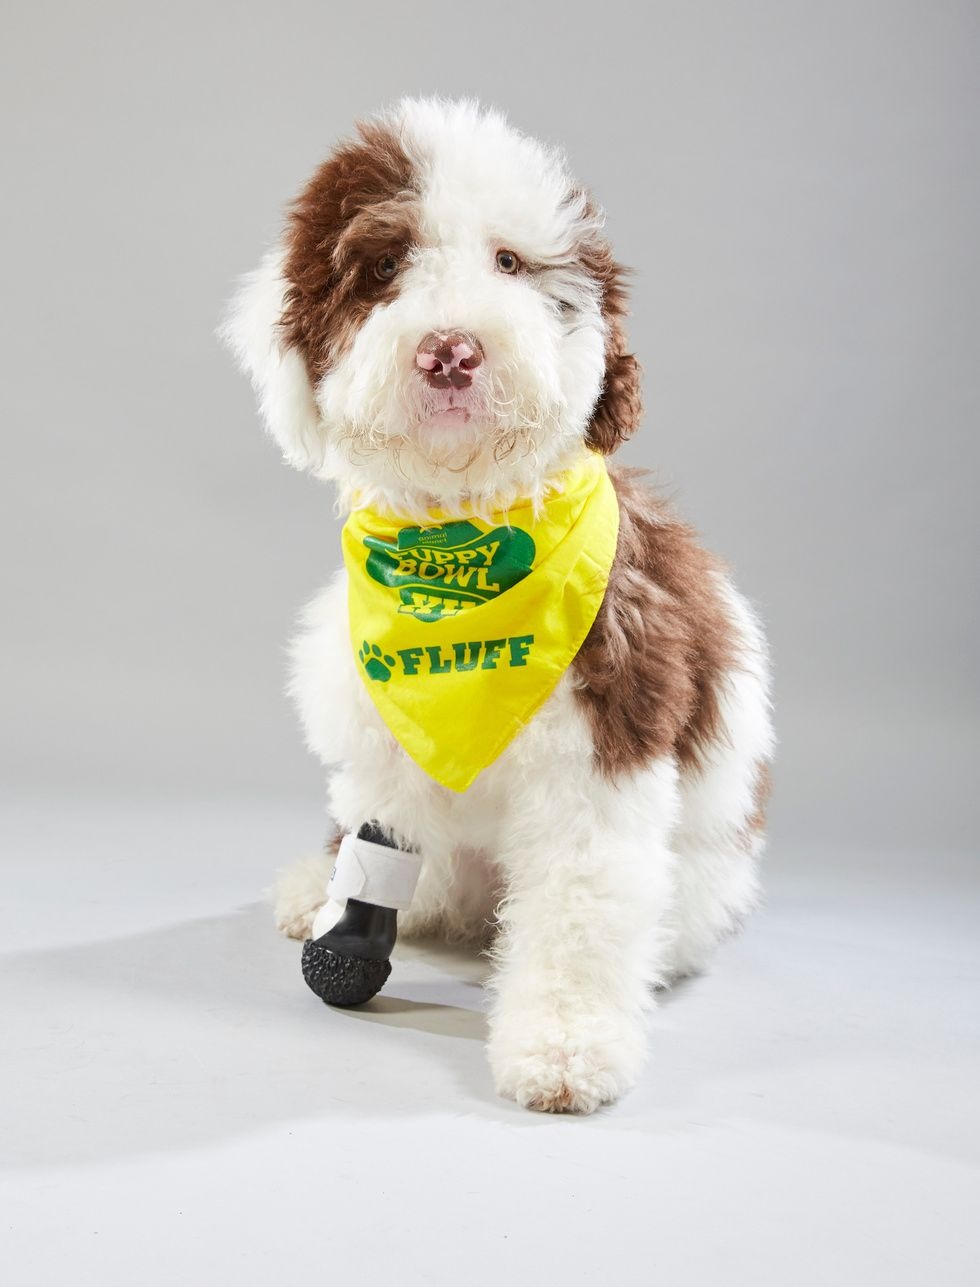 Meet the 12 Southern dogs in the Puppy Bowl XV starting line